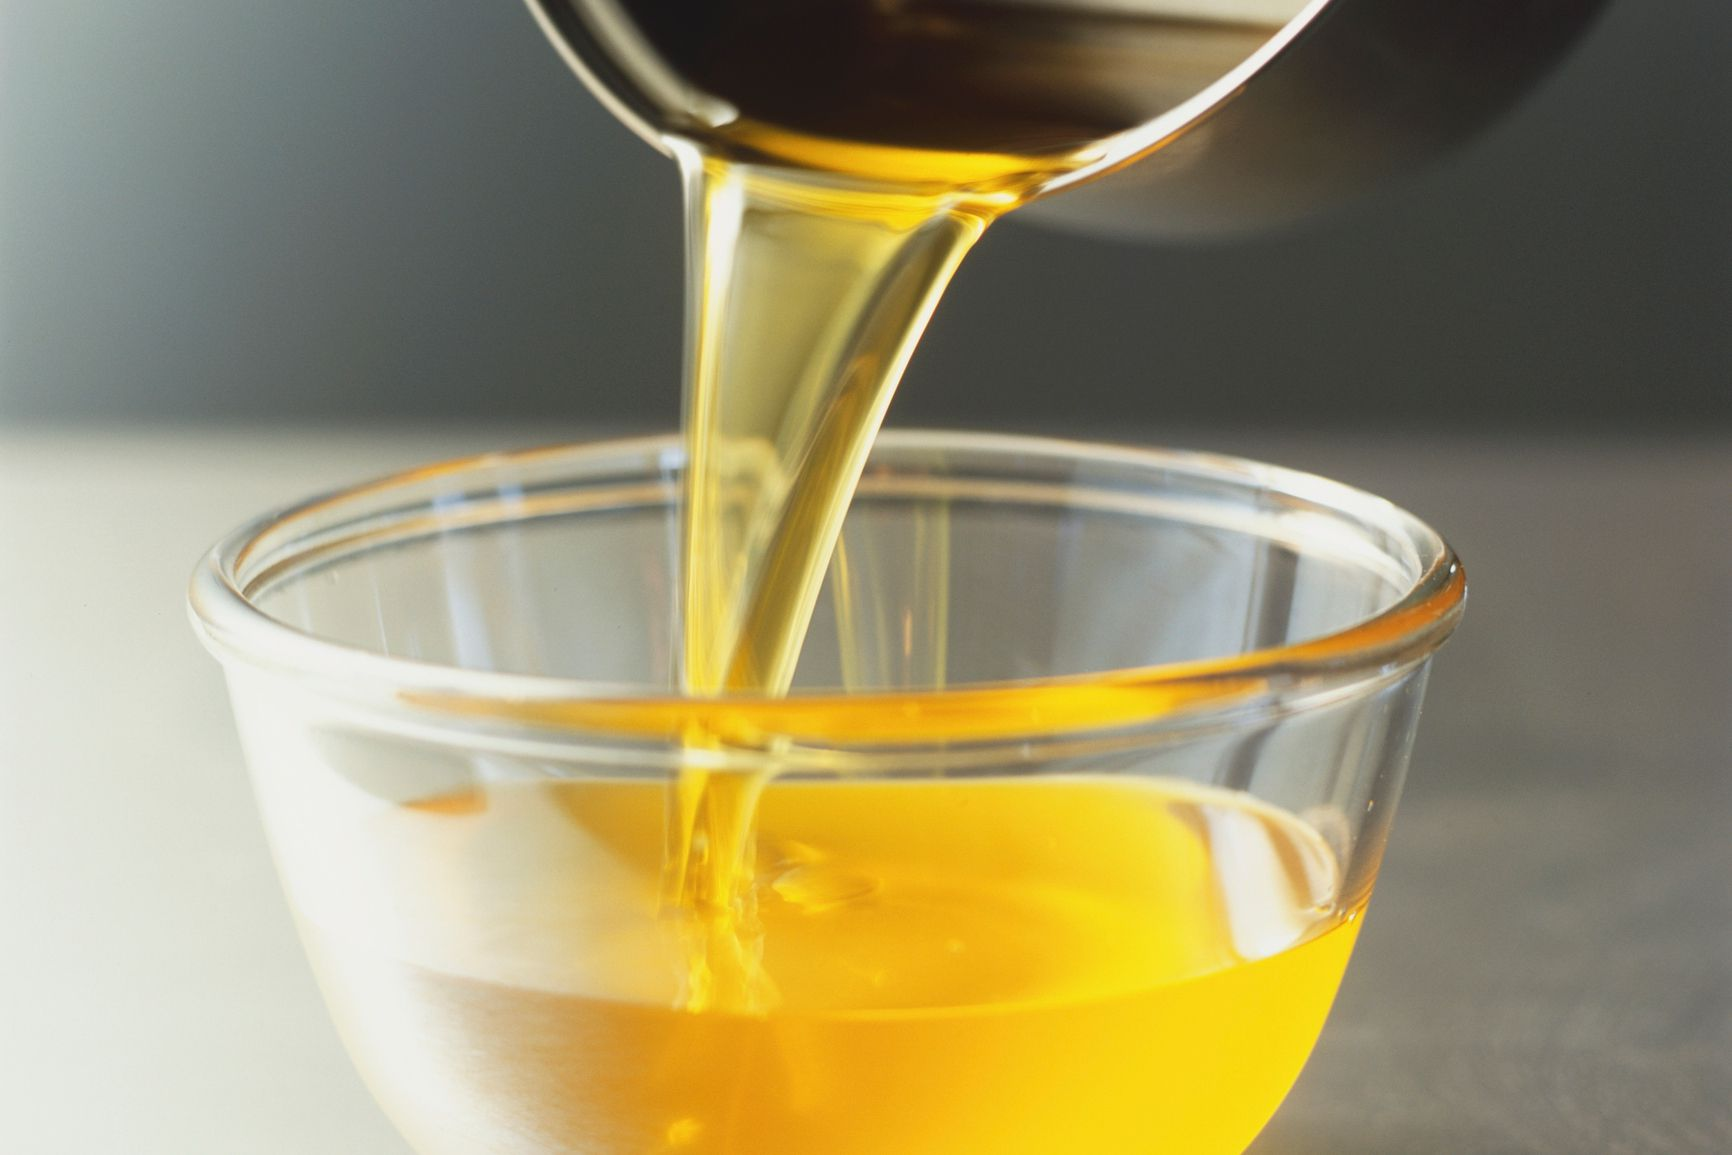 How To Make Clarified Butter: 6 Simple Steps